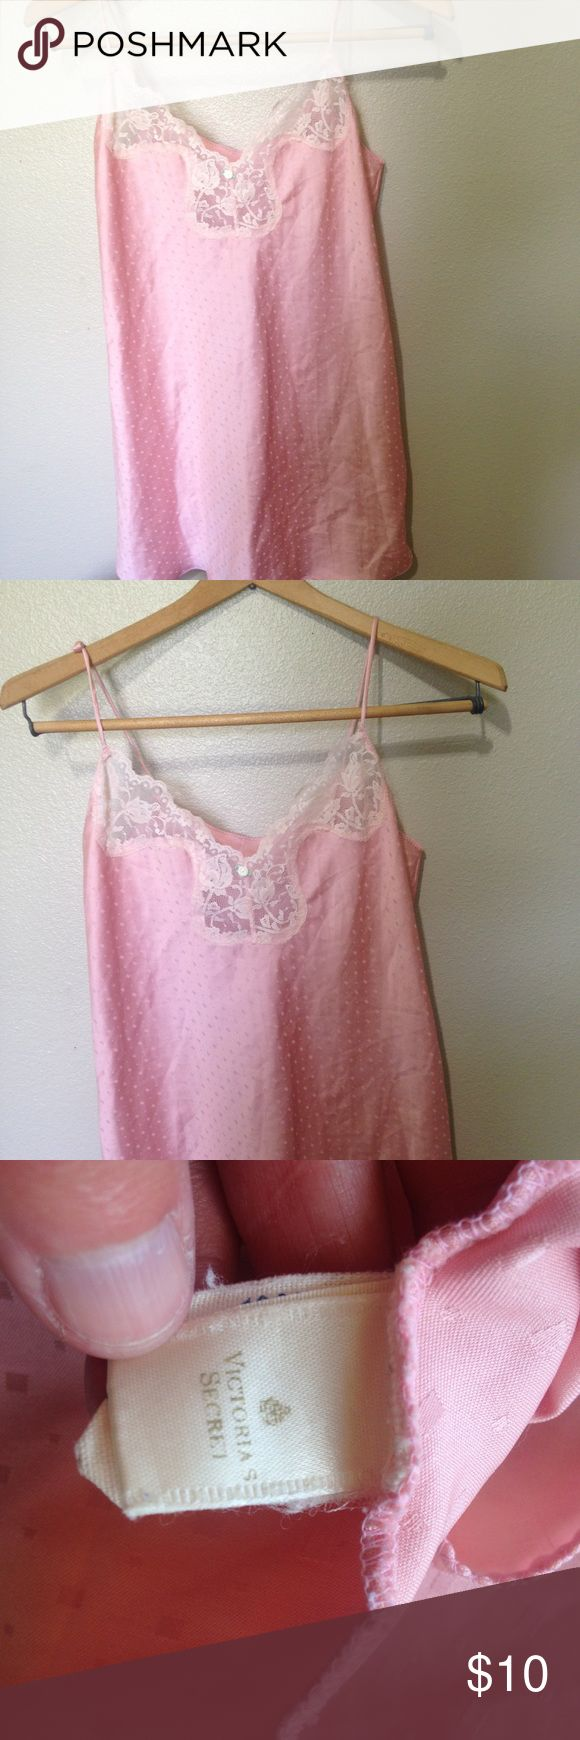 Vintage Victoria's Secret nightgown size medium Brand- Victoria's Secret-   In perfect condition to be a vintage piece- no flaws, stains,fading ect- women's nighty size medium- the straps are so cute with knots on them- 100% Polyester- GOLD and White Label which was the secret label and the first label from the early 80s- perfect to wear and a jewel to collectors Victoria's Secret Intimates & Sleepwear